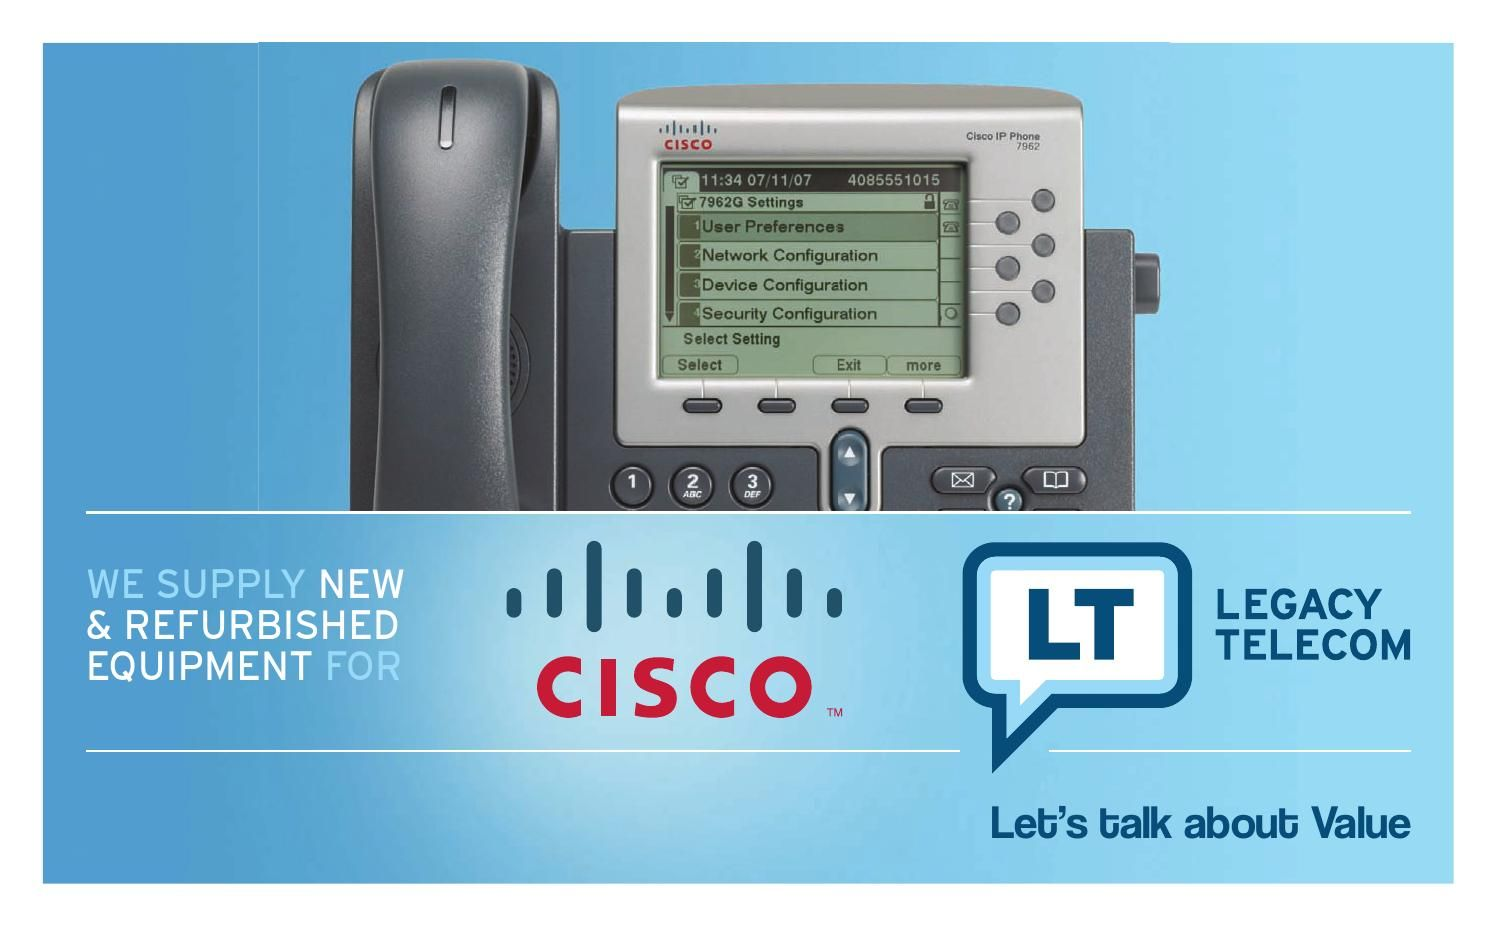 Libro Cisco Cisco Brochure Phones Pinterest